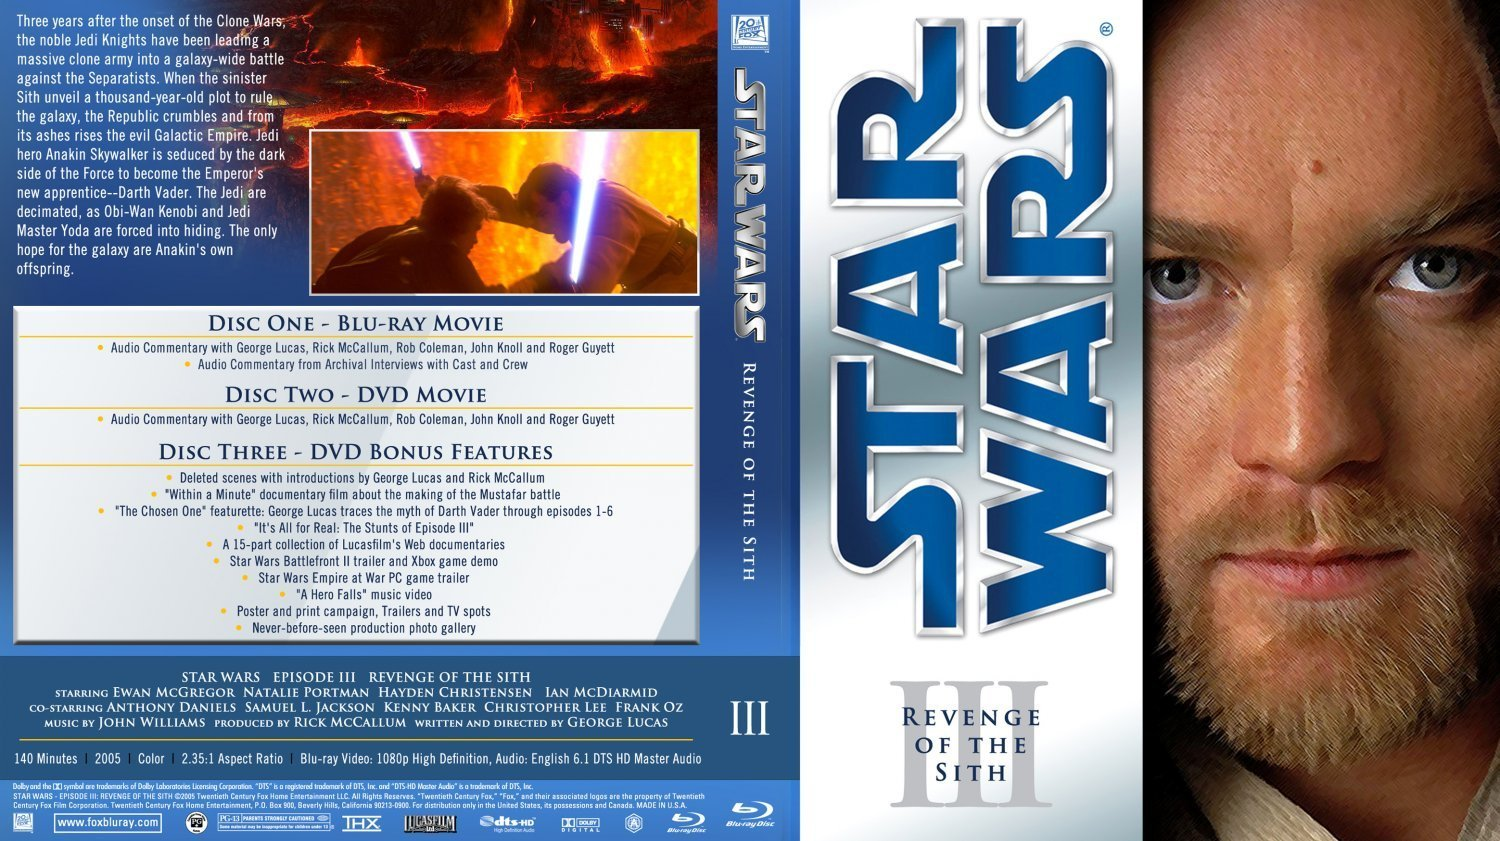 Star Wars Episode Iii Revenge Of The Sith Bluray V4 Dvd Covers And Labels